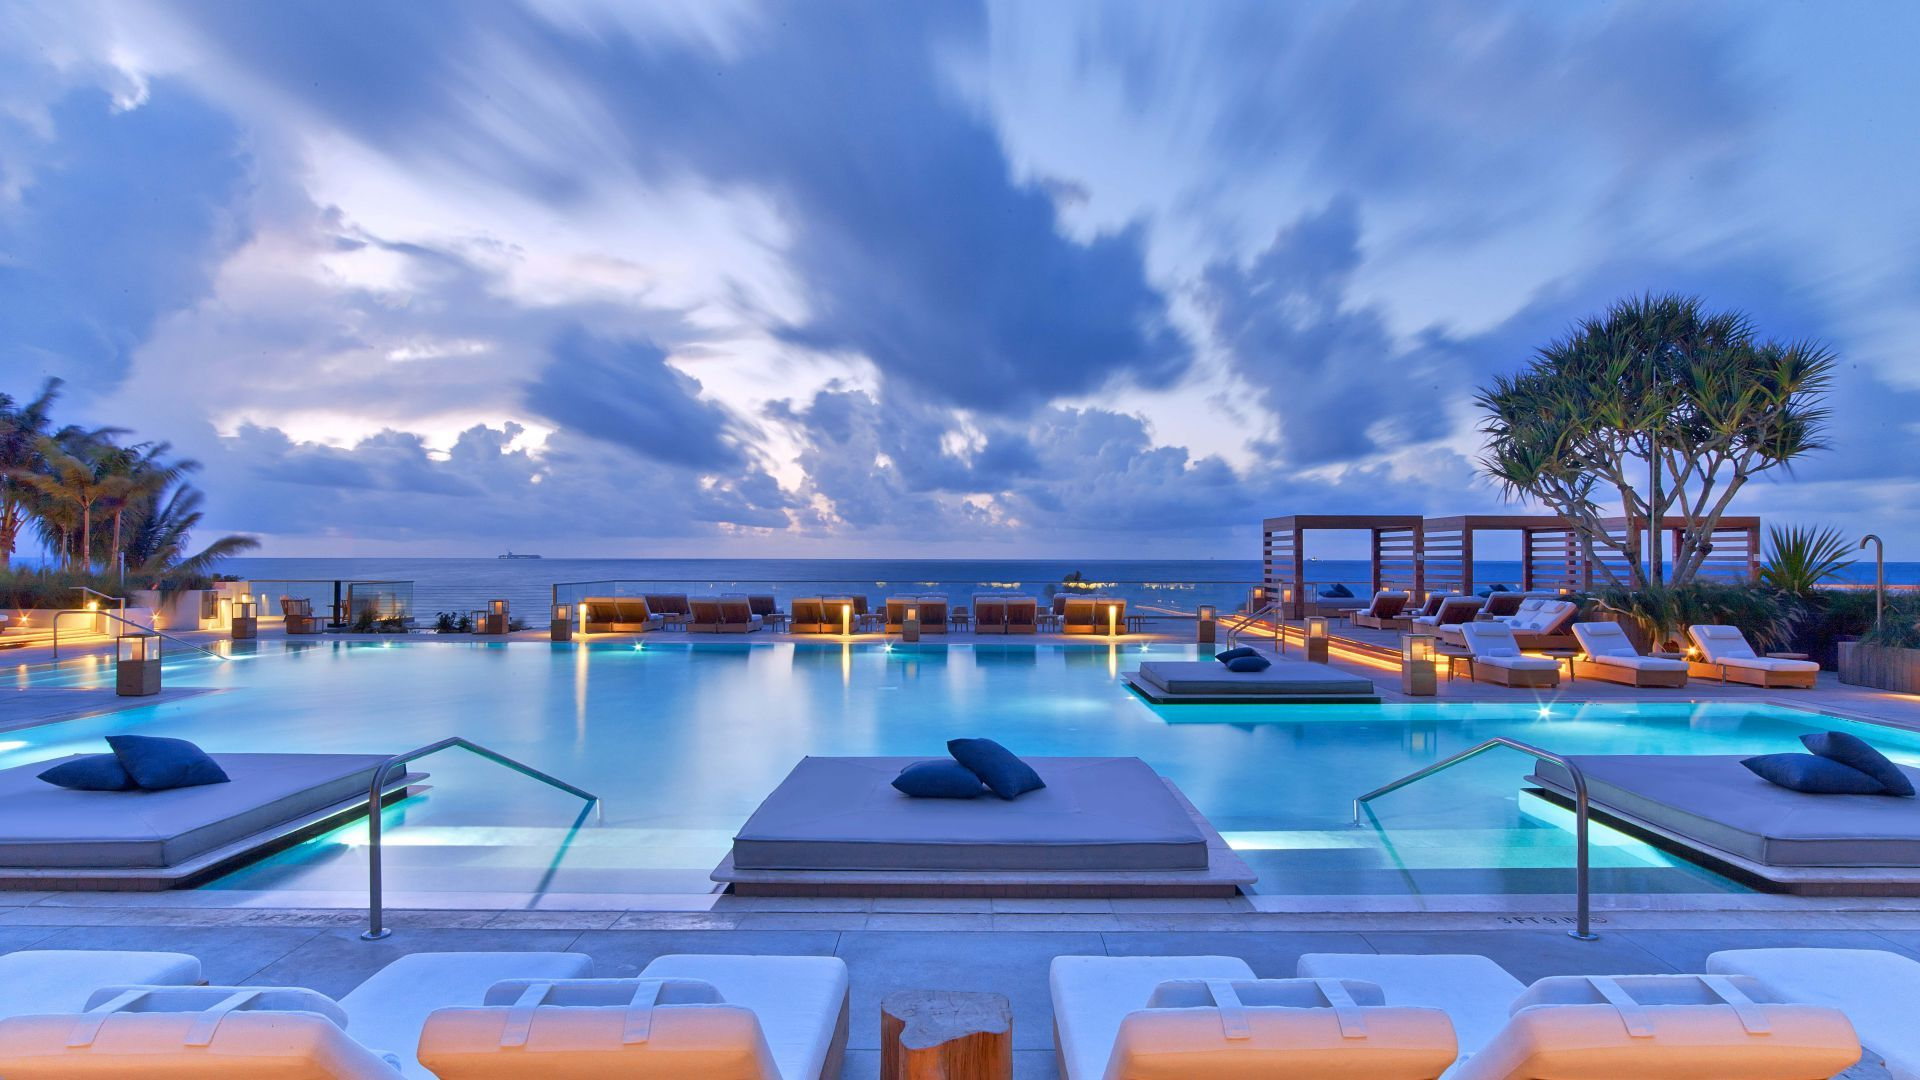 1 Hotel South Beach In Miami With Rooftop Pool